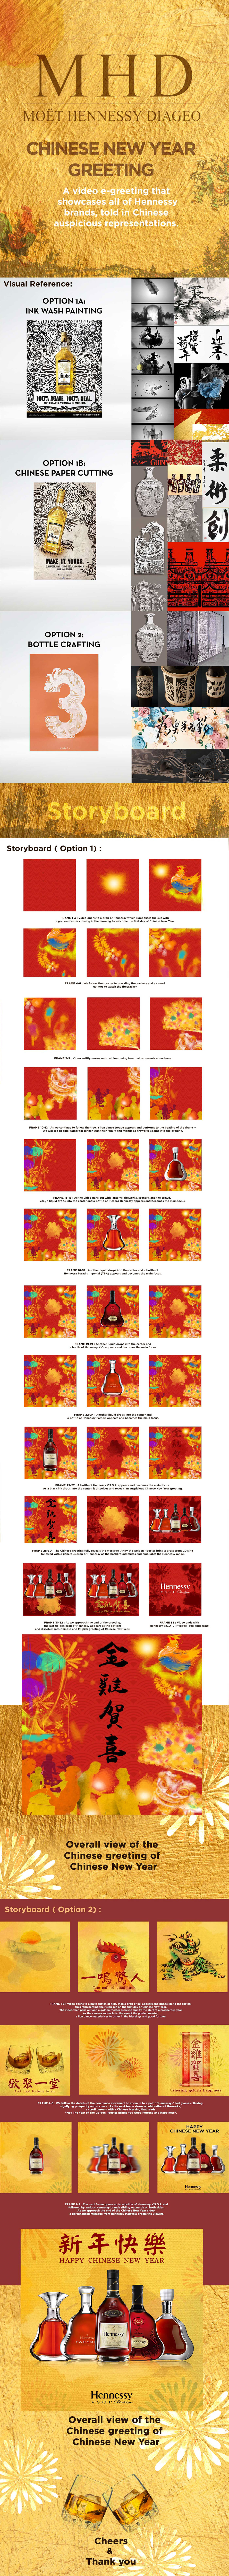 Mhd chinese new year greeting on student show mhd chinese new year greeting kristyandbryce Gallery